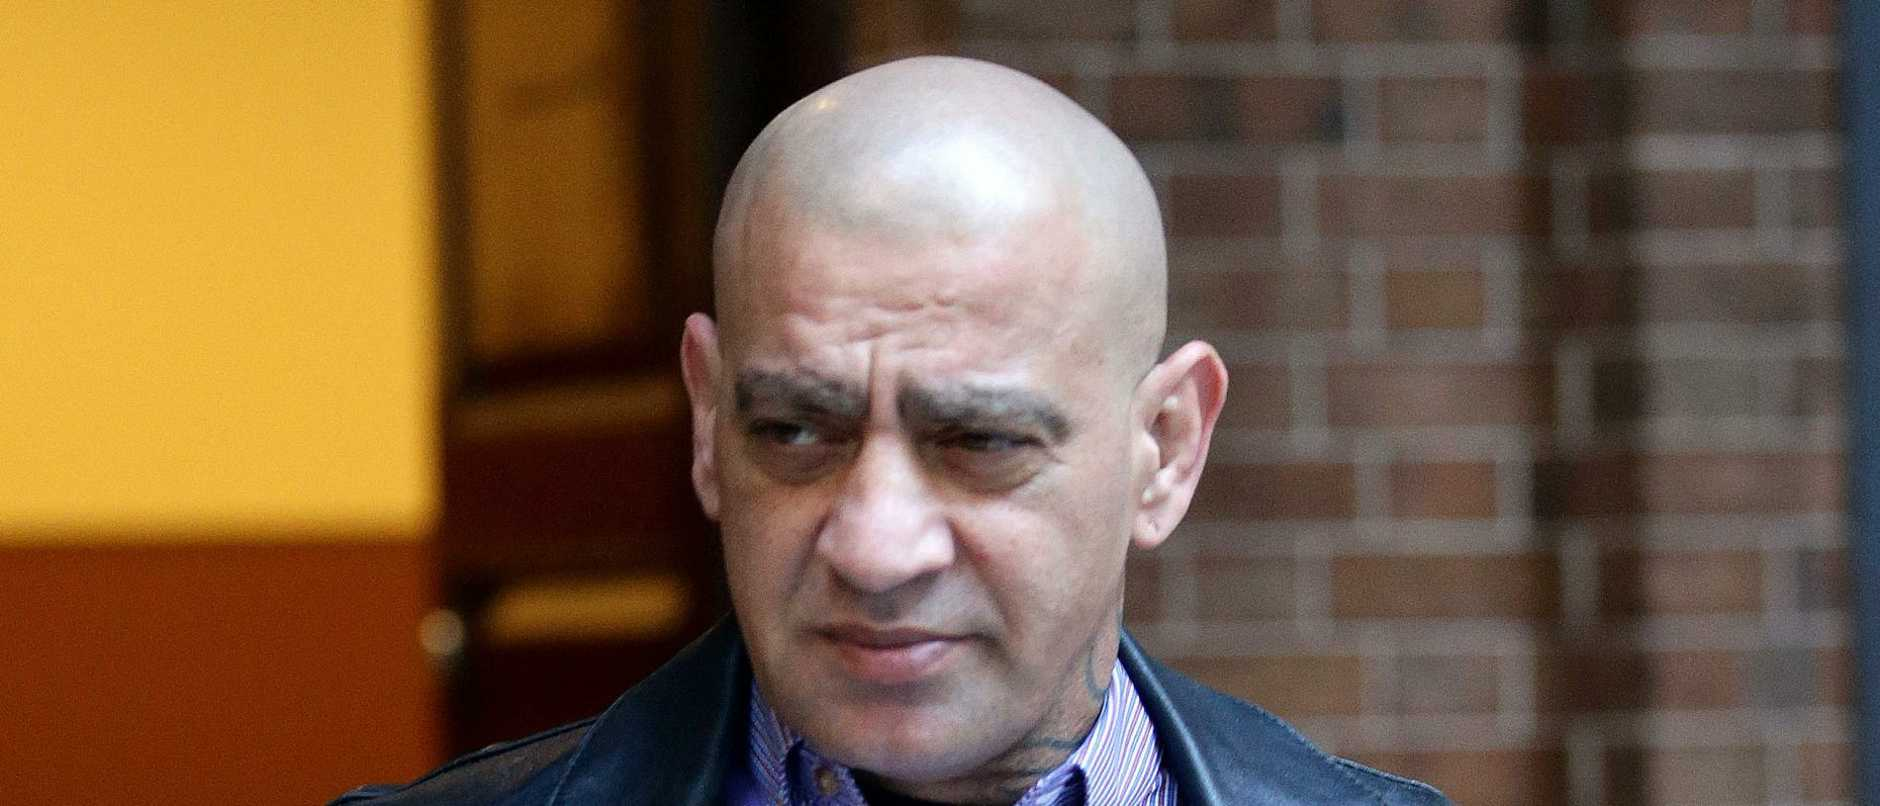 Sydney crime figure Sam Ibrahim has been deported to Perth in a dawn operation.